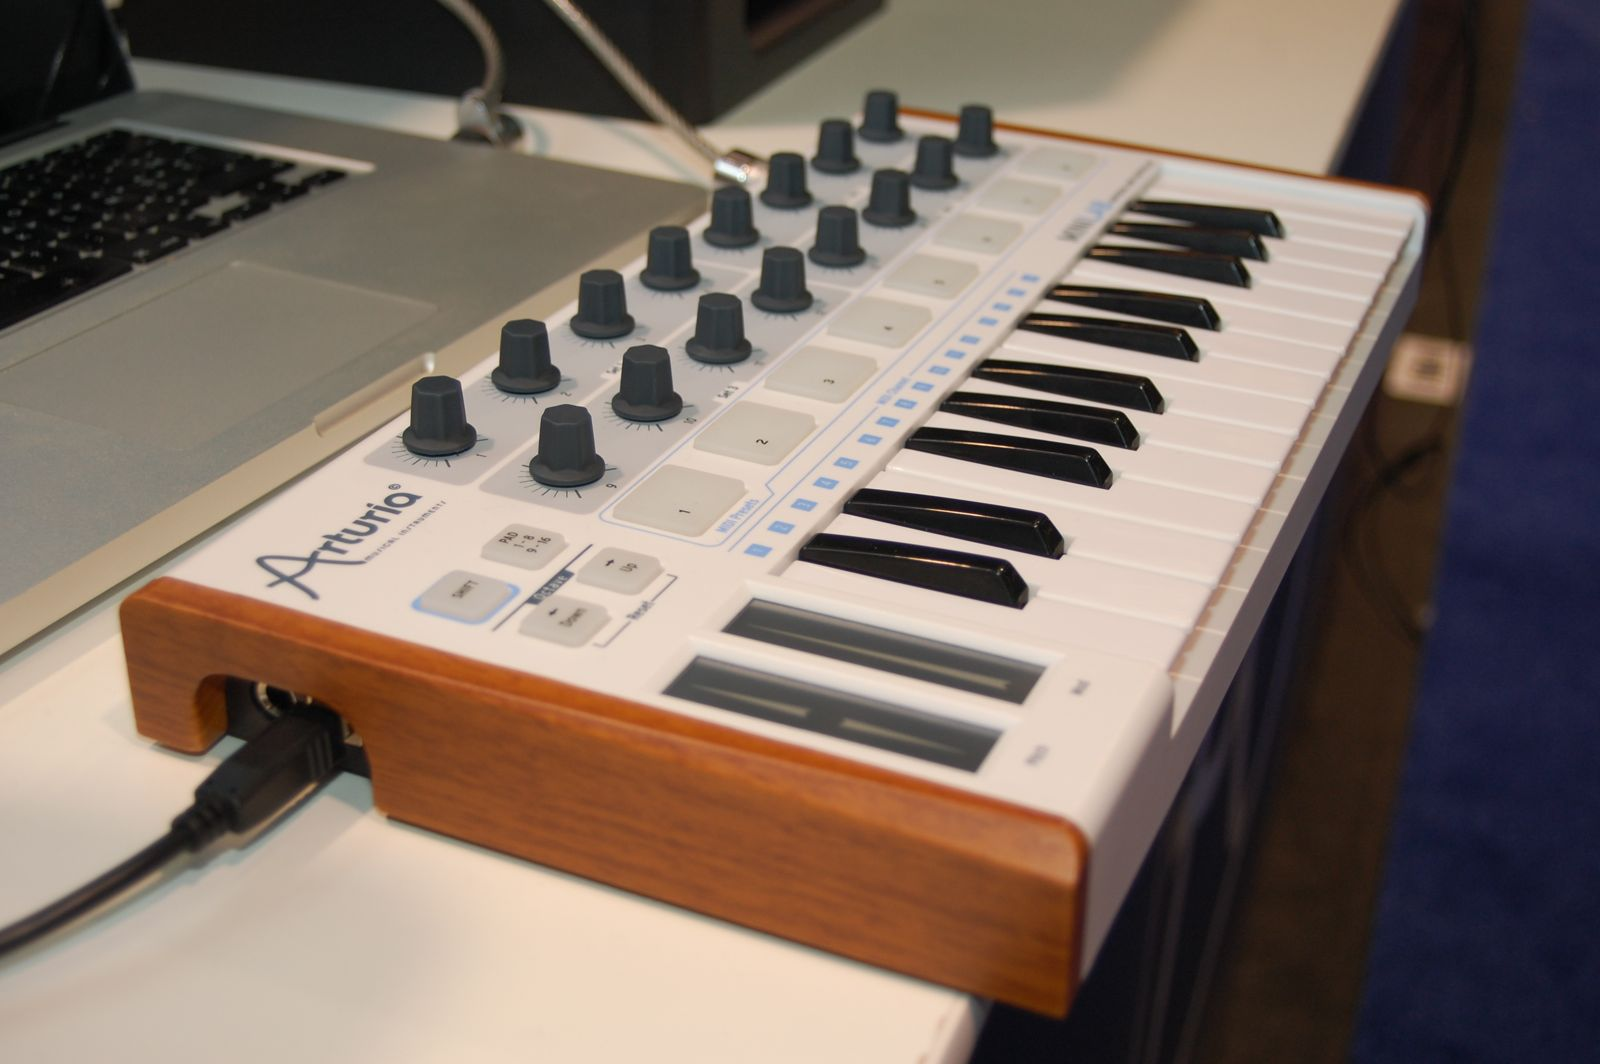 Keys and Knobs and Such, New Gear, in Photos: Notes and